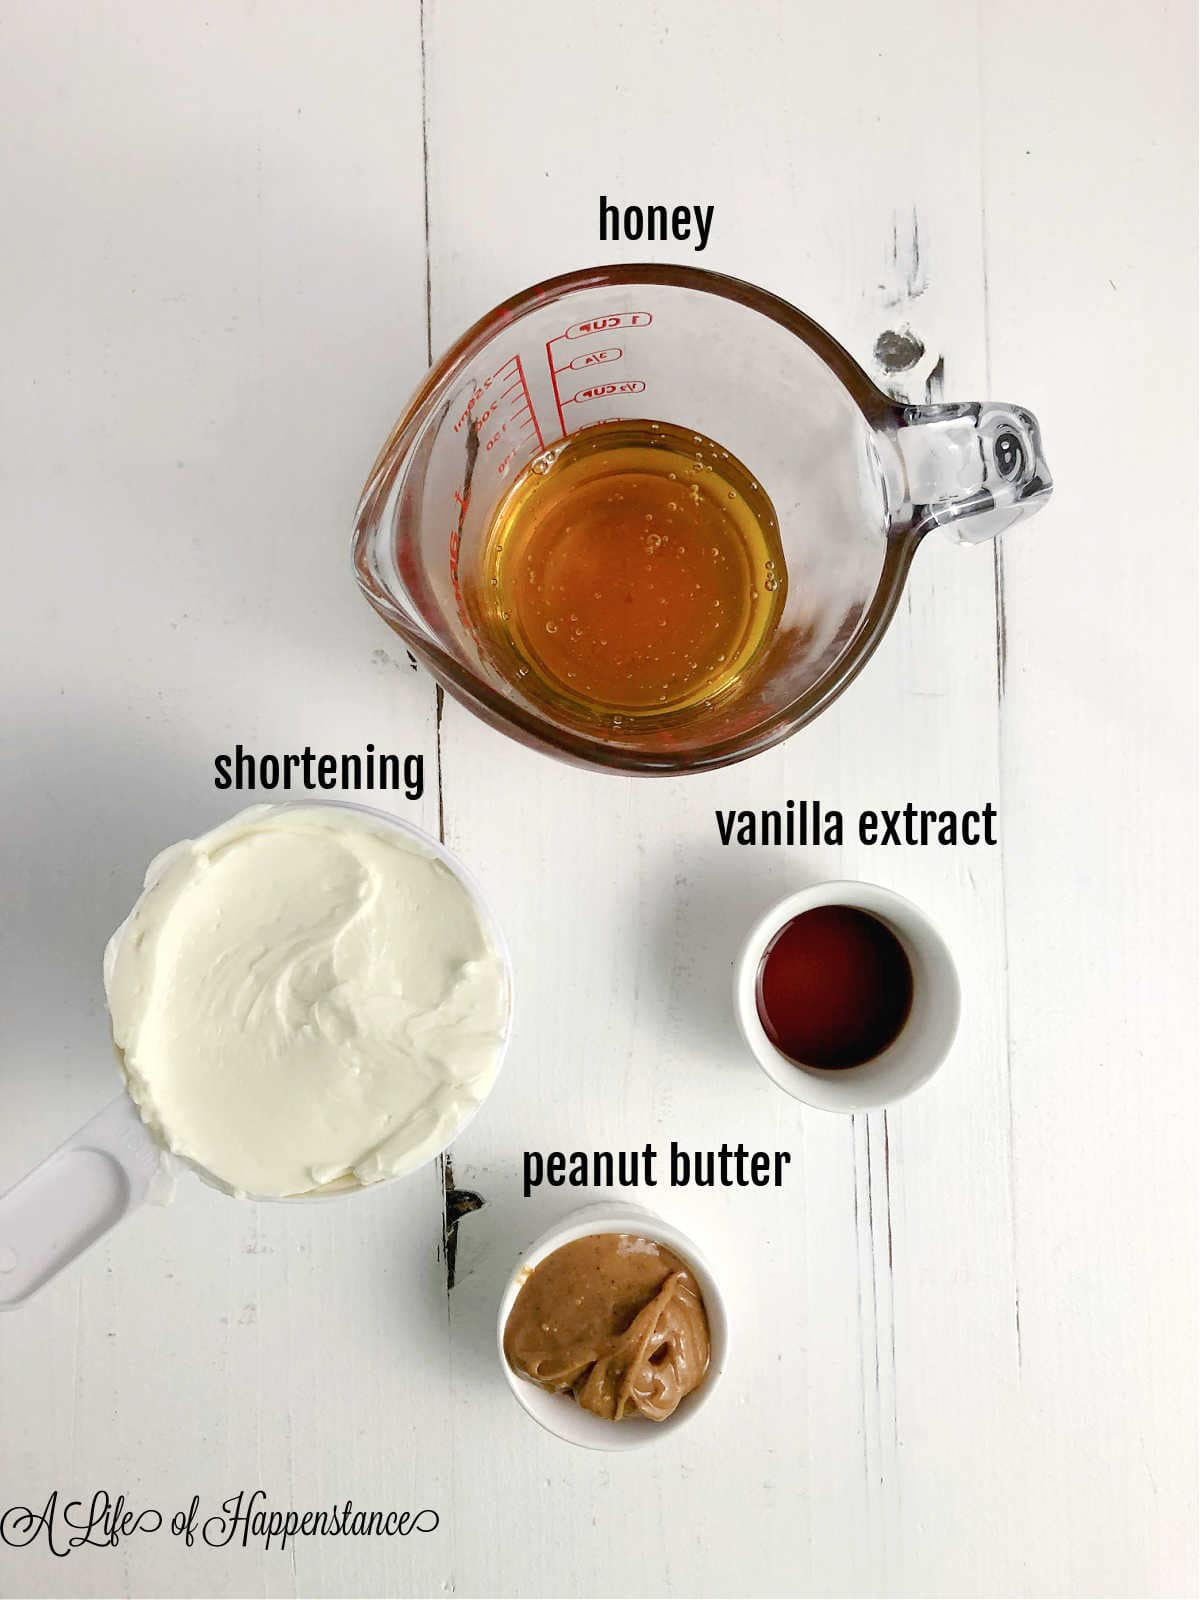 Ingredients for the frosting; honey, shortening, vanilla extract, and peanut butter.